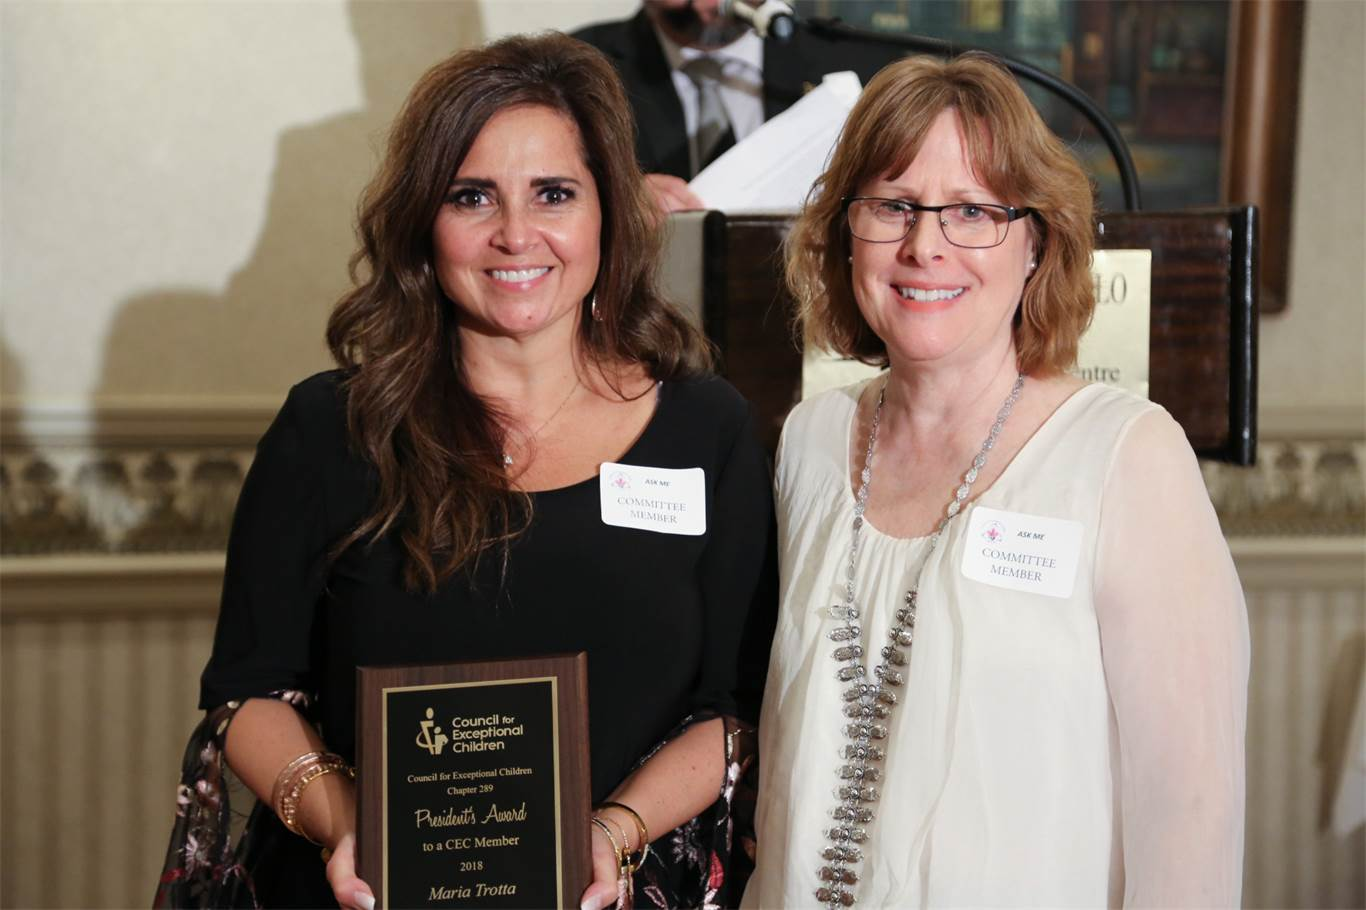 CEC President Sandy Scott presents Maria Trotta with the President's Award to a CEC Member. Photo by Jenna Madalena.